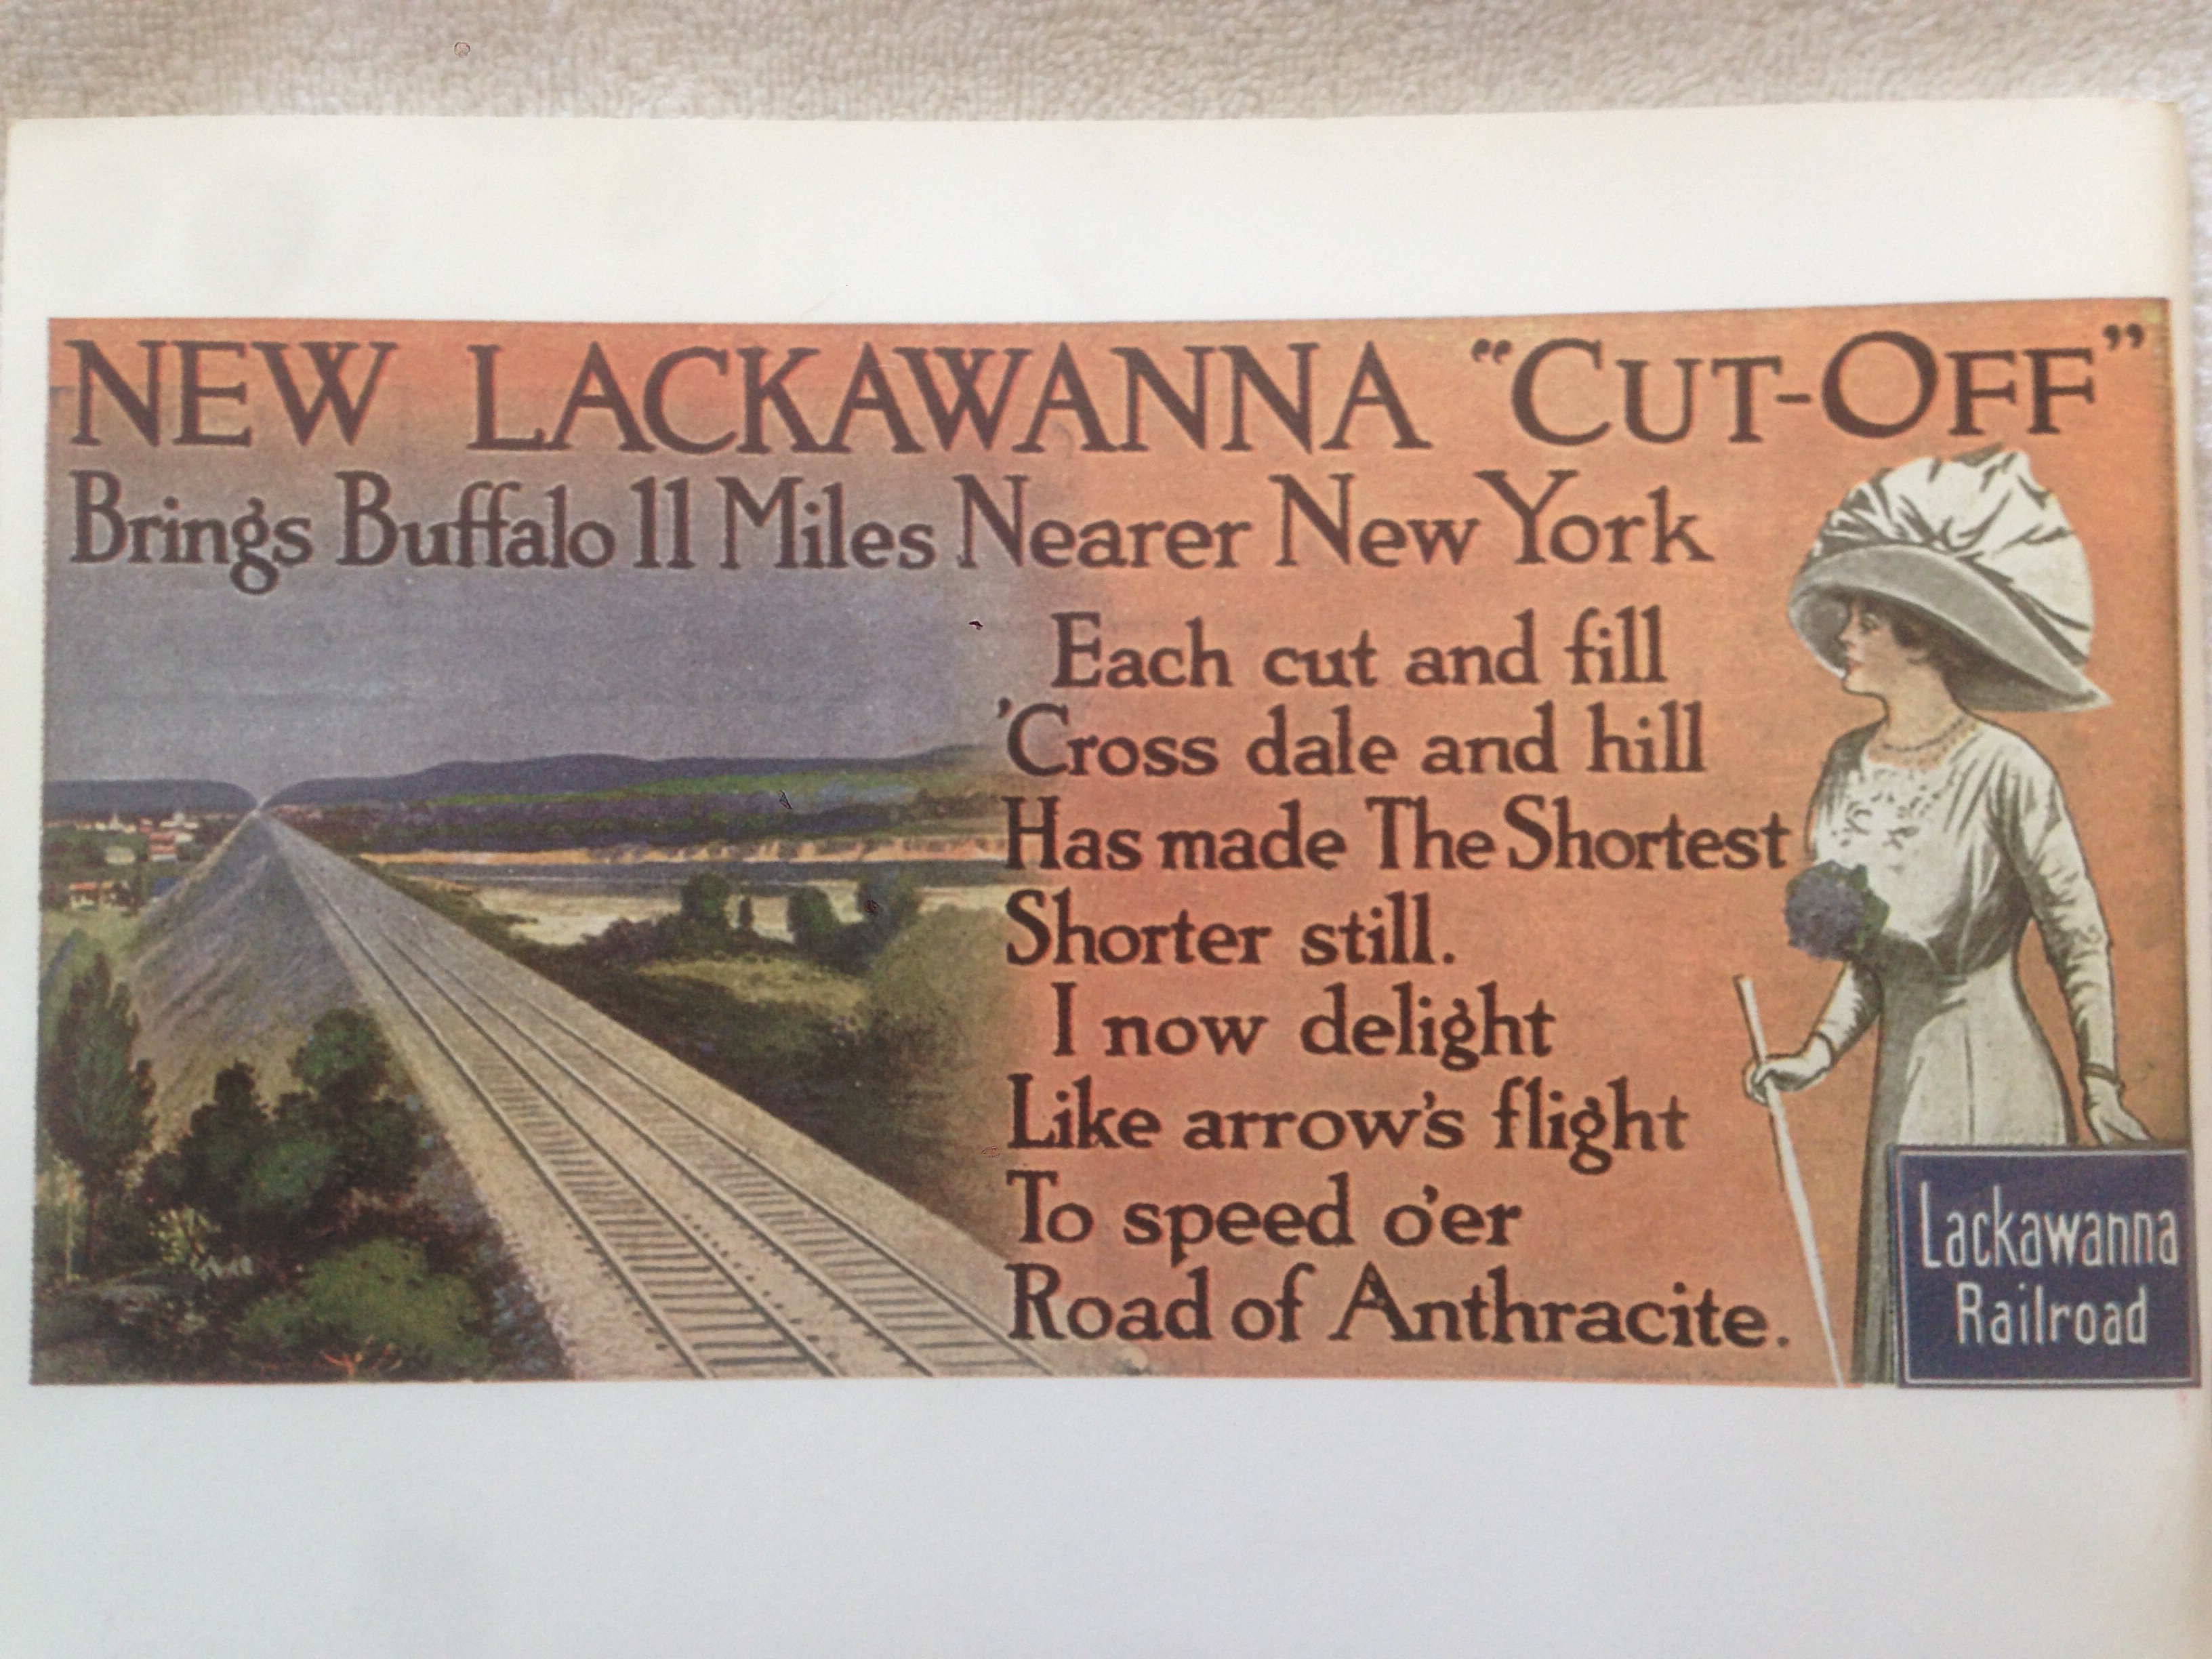 the lackawanna cutoff Definitions of lackawanna cut off, synonyms, antonyms, derivatives of lackawanna cut off, analogical dictionary of lackawanna cut off (english).